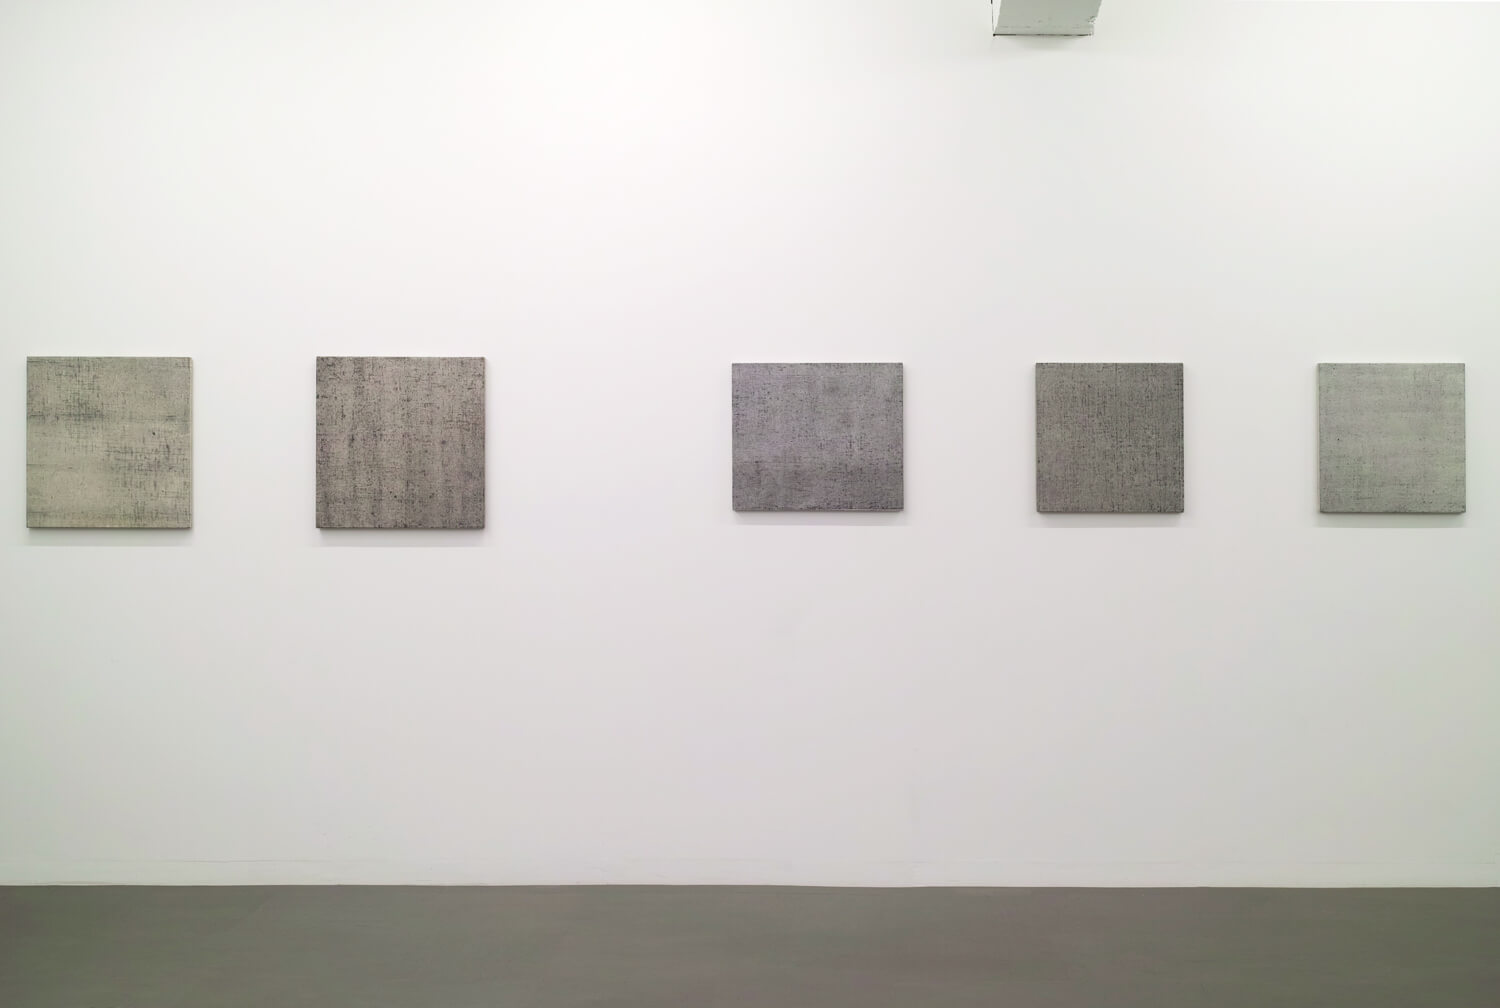 from left<br>Drawing by drawing, Oil on Canvas, 53 x 53 cm, 1977<br>Drawing by drawing, Oil on Canvas, 53 x 53 cm, 1977<br>Drawing by drawing, Oil on Canvas, 45.5 x 53 cm, 1979<br>Drawing by drawing, Oil on Canvas, 45.5 x 45.5 cm, 1979<br>Drawing by drawing, Oil on Canvas, 45.5 x 45.5 cm, 1979